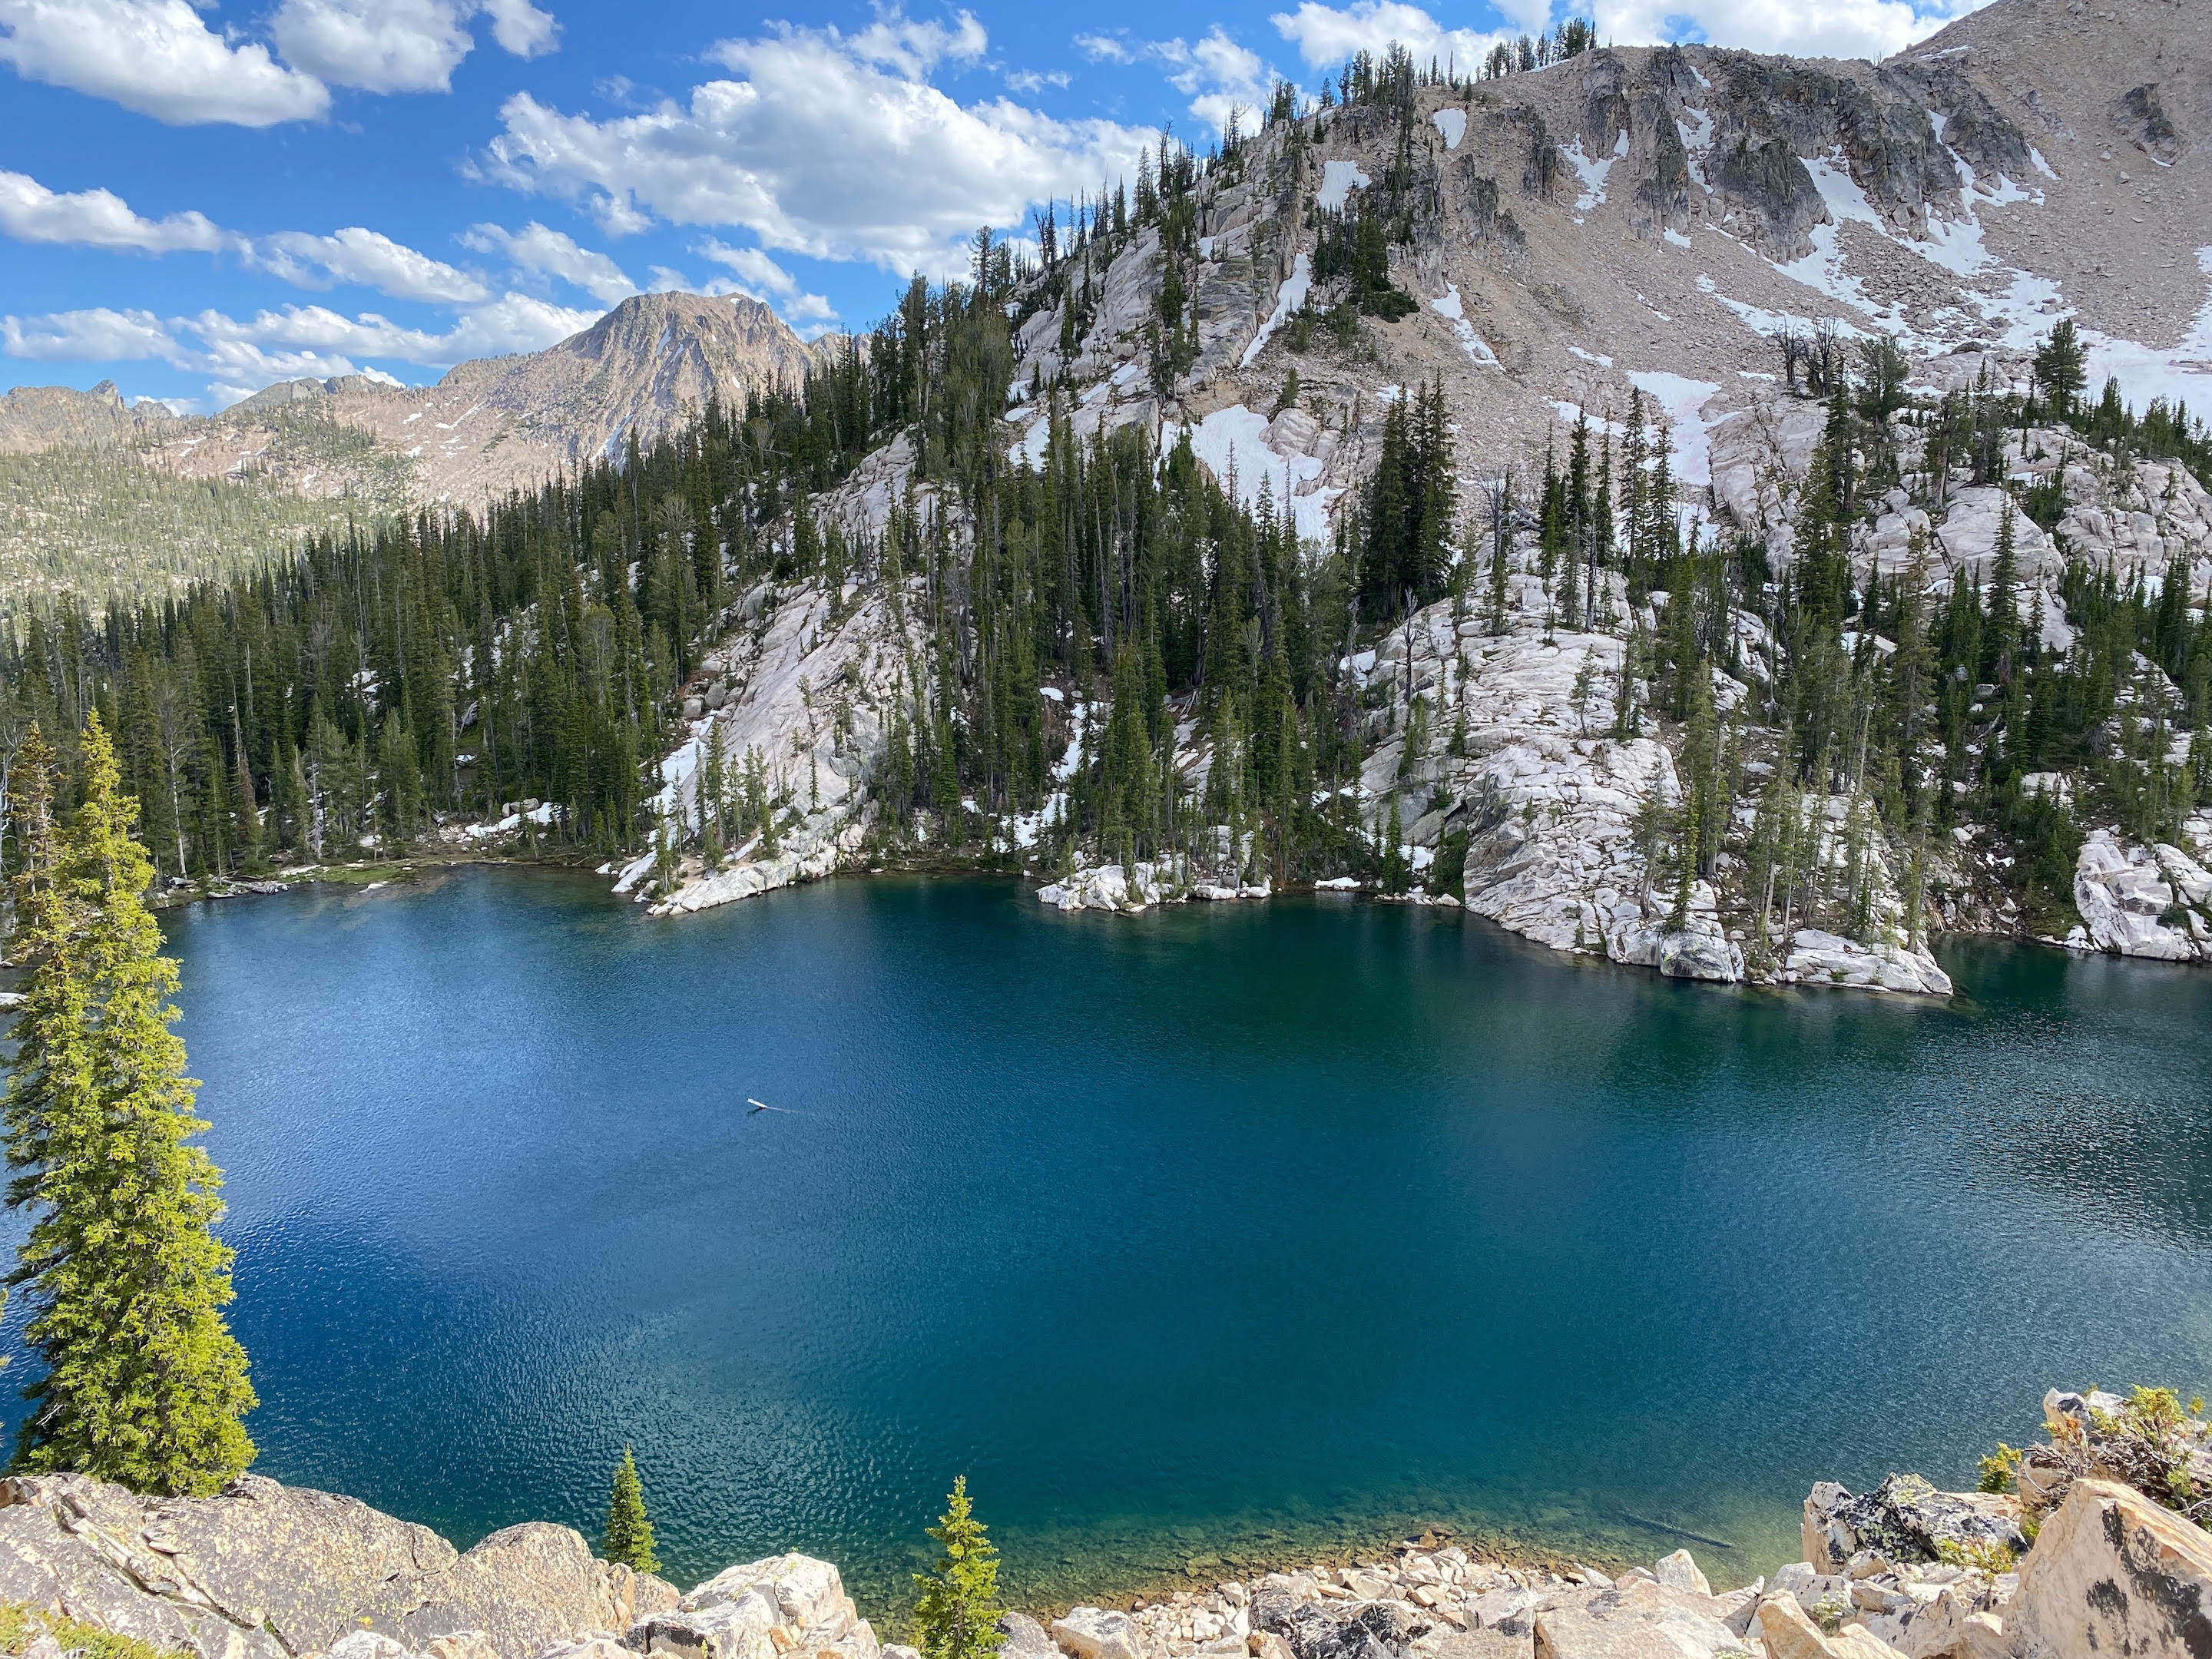 a beautiful mountain lake surrounded by spruce forest and high alpine scree and talus slopes